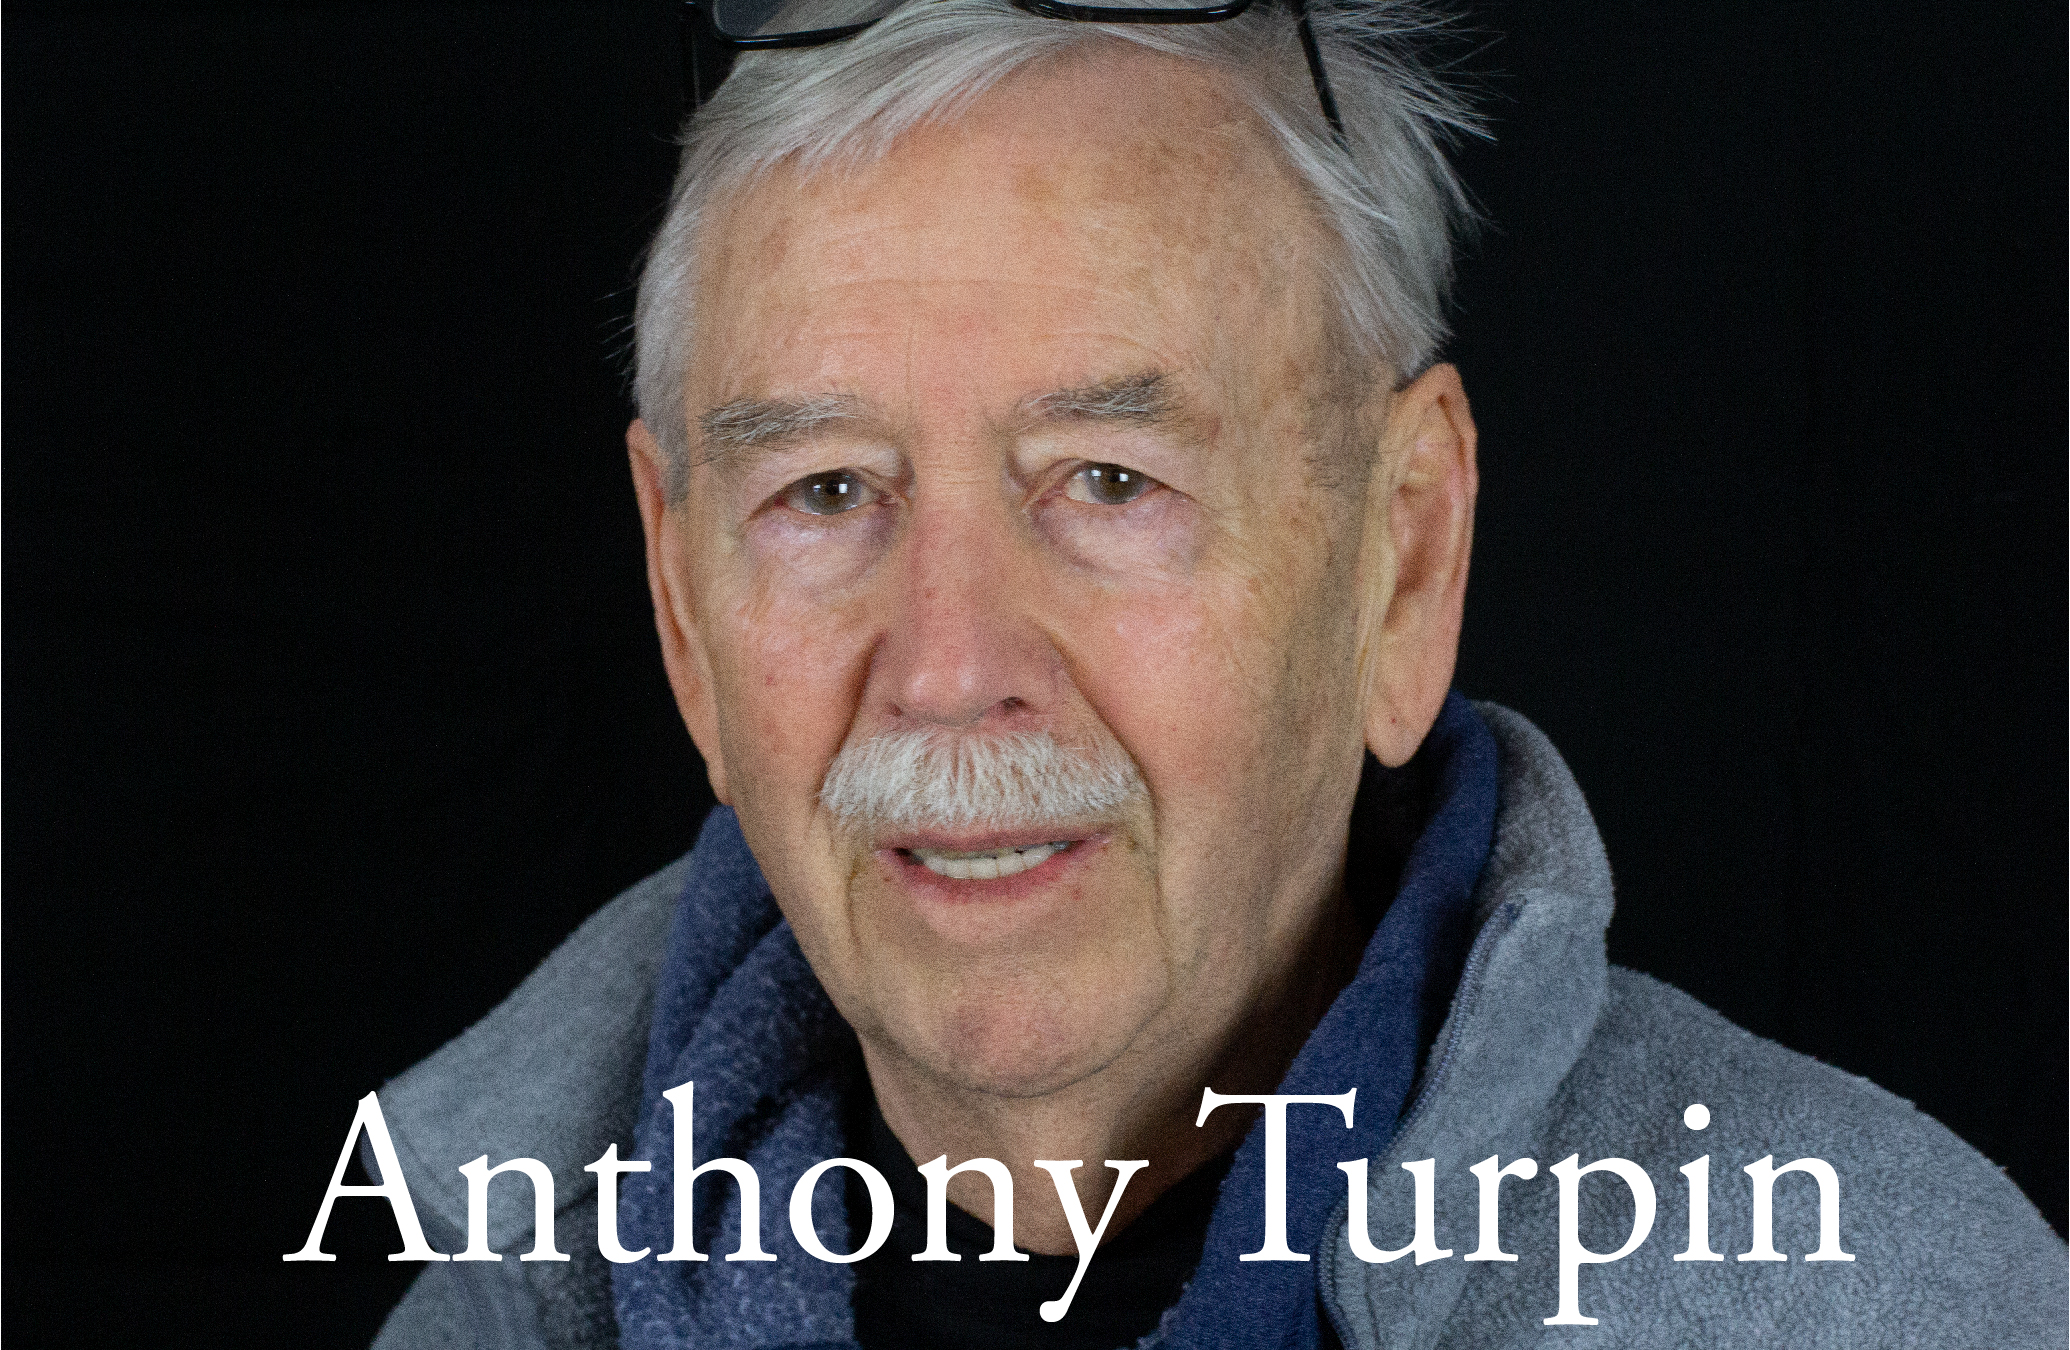 Meet Vintage Watercolorist Anthony Turpin: Artist in Search